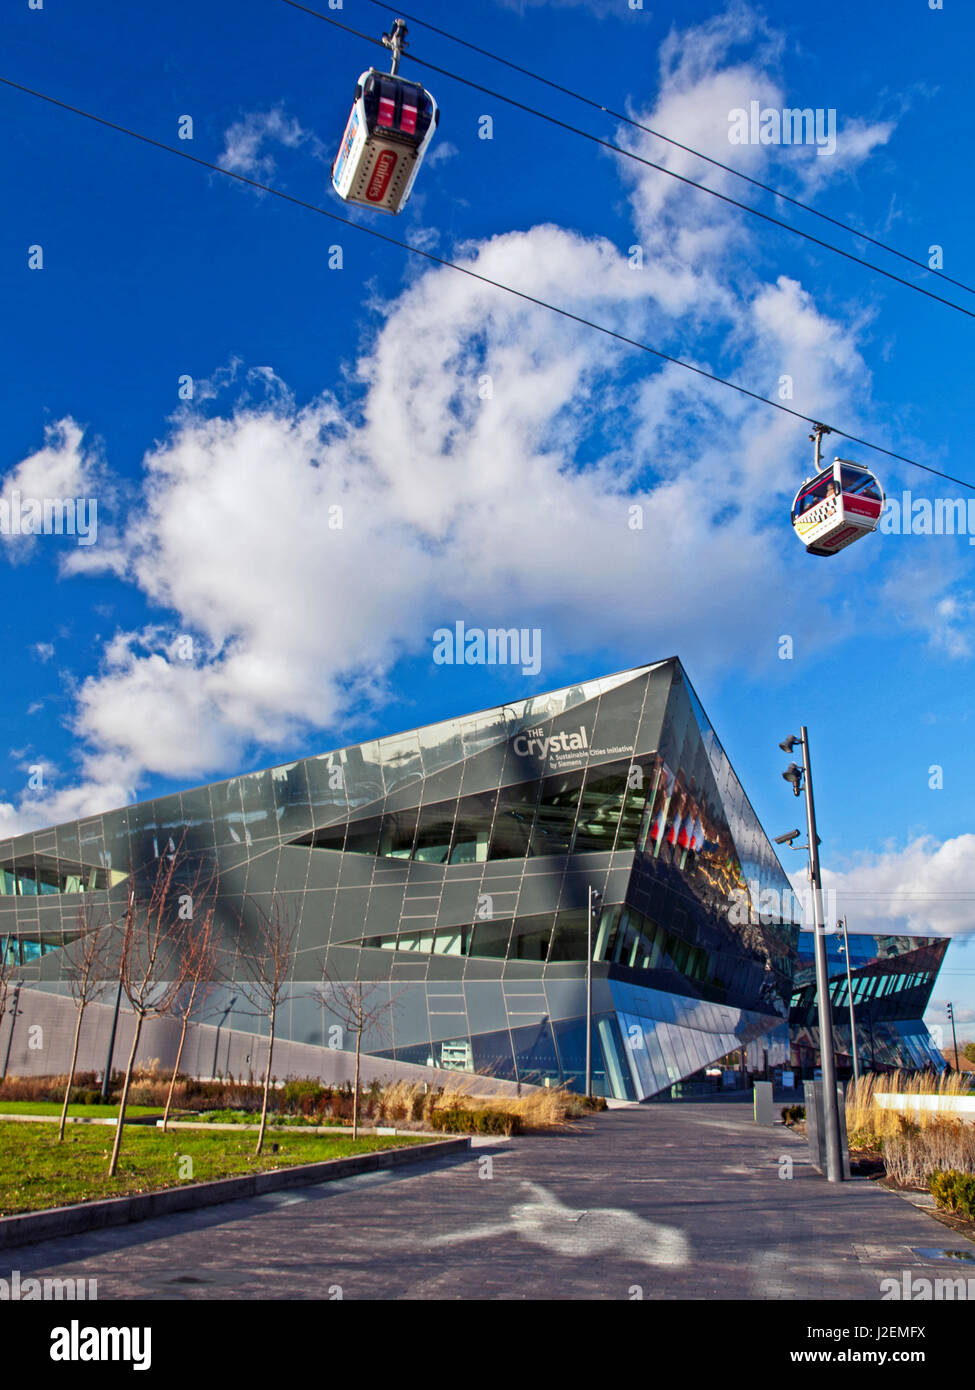 Europe, United Kingdom, England, East London, Royal Victoria Dock. The Crystal building, owned and operated by Siemens - Stock Image